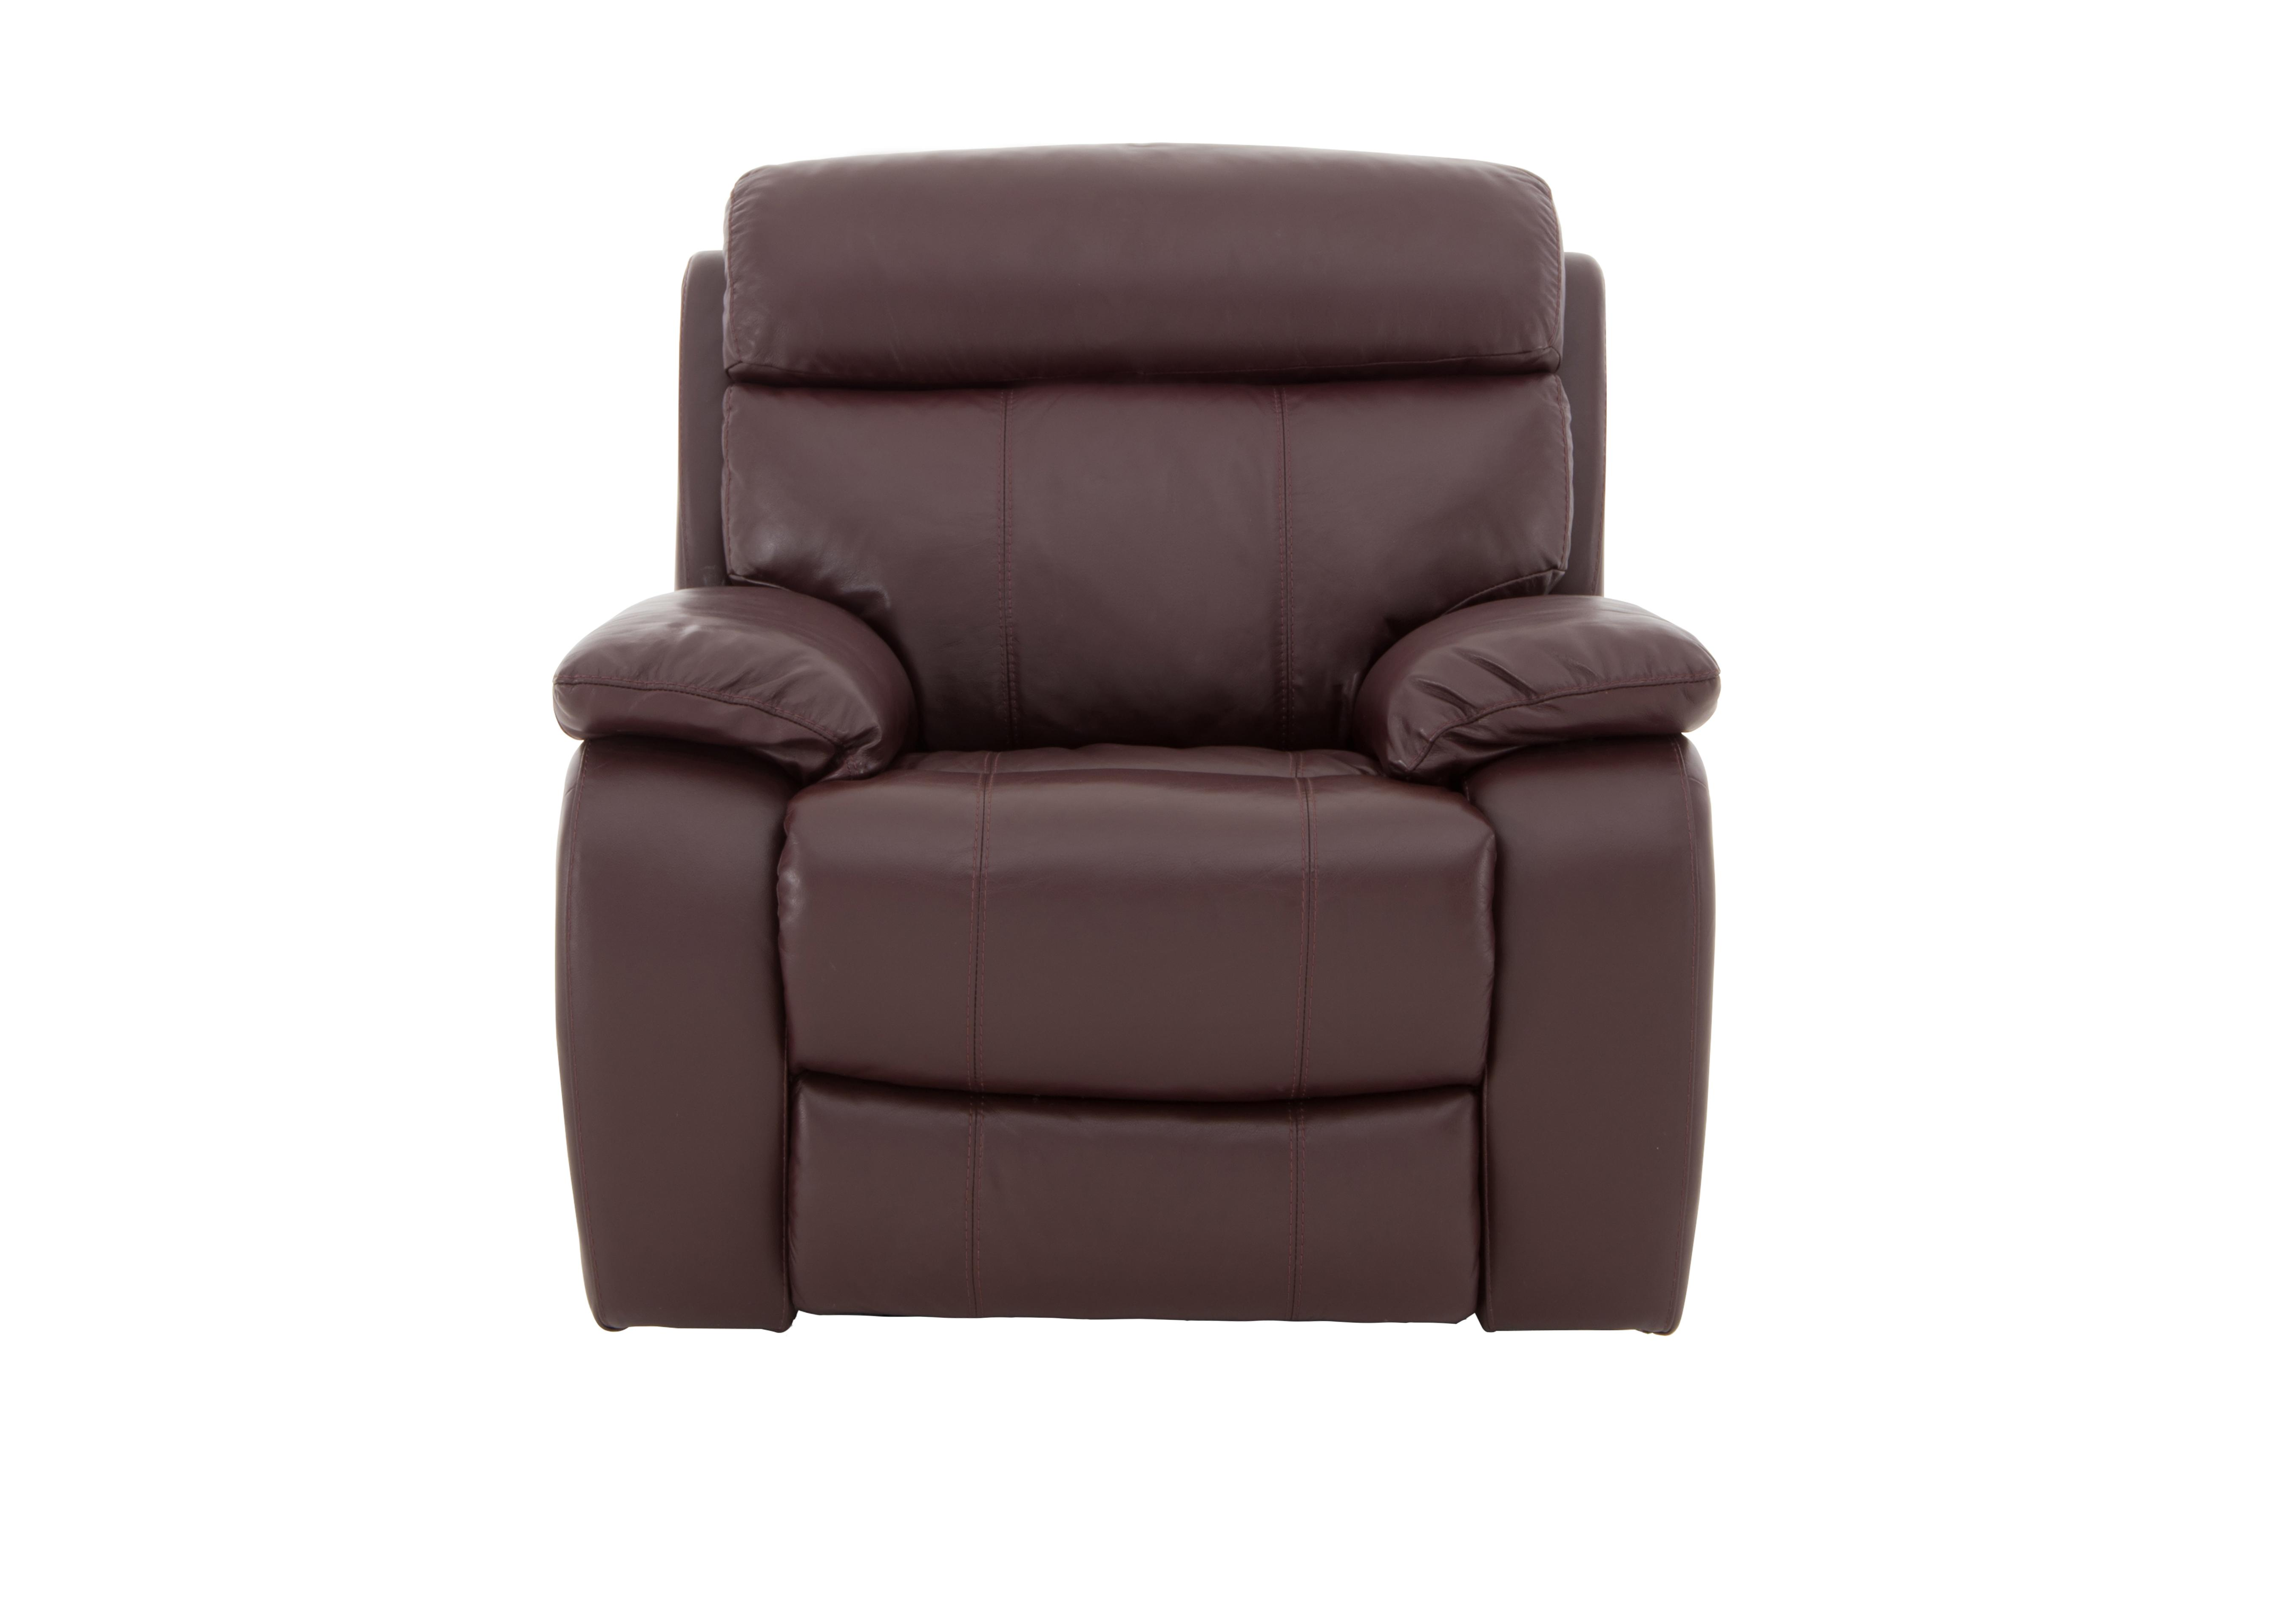 Free power upgrade. Save £200. Moreno Leather Recliner Armchair  sc 1 st  Furniture Village & Recliner armchairs - Furniture Village islam-shia.org